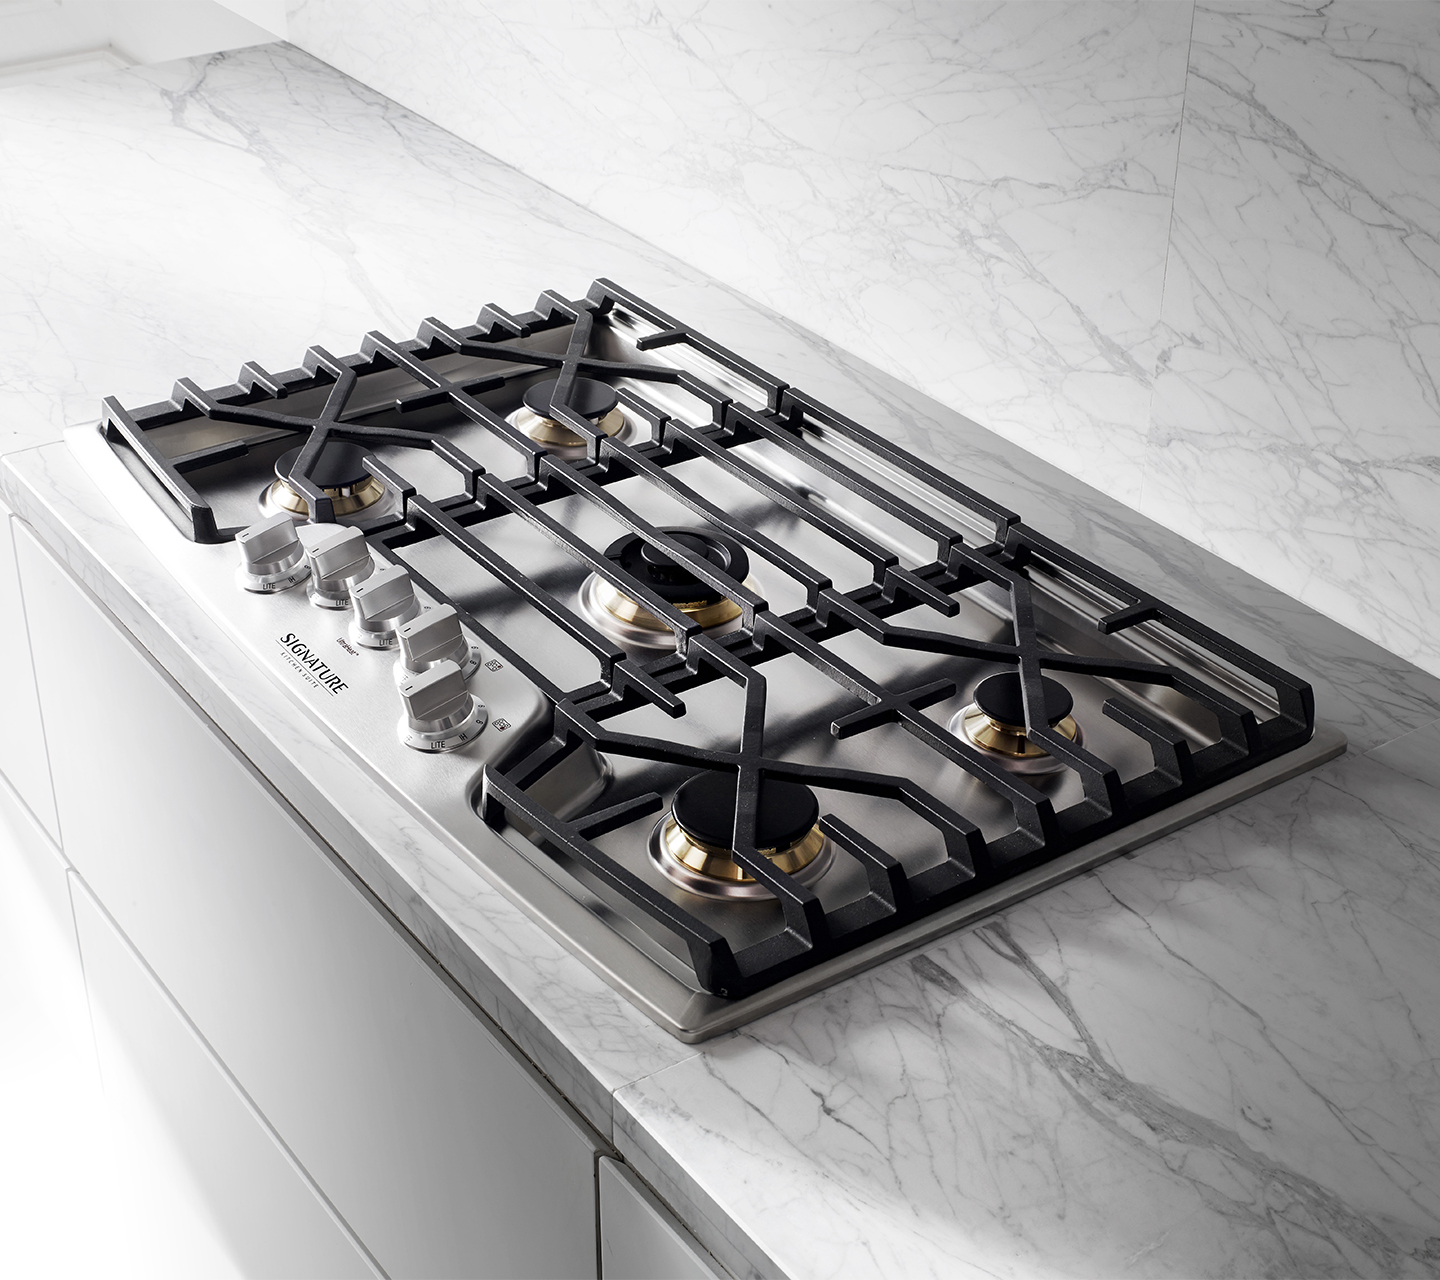 36-inch Gas Cooktop Cast Iron Grates from Signature Kitchen Suite